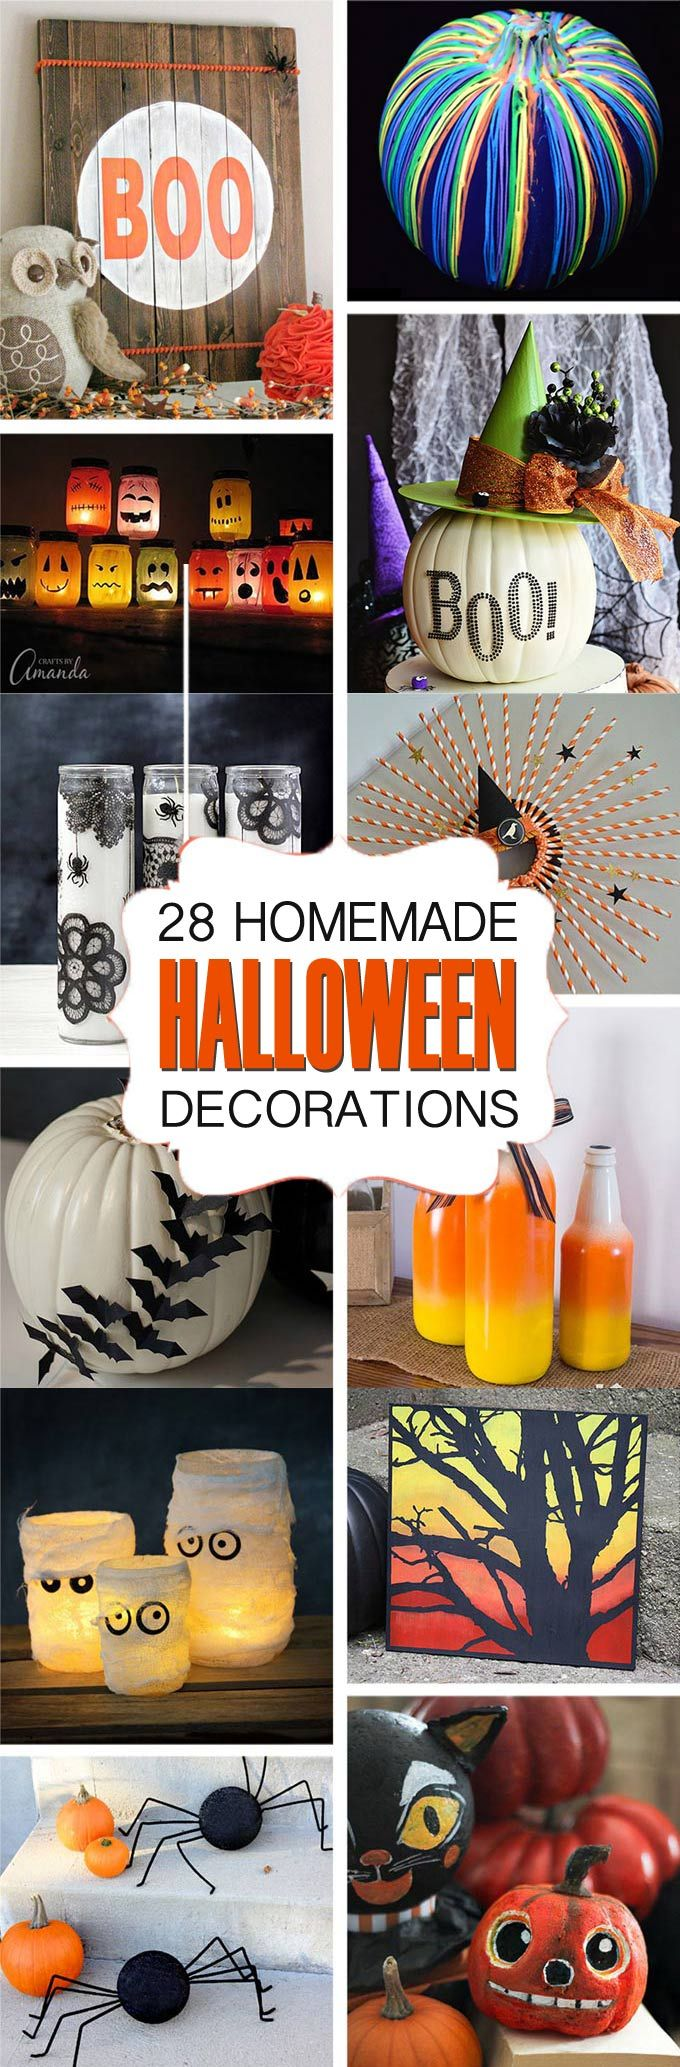 Easy homemade halloween decorations - 28 Homemade Halloween Decorations If You Are Looking For Crafty Ways To Decorate For Halloween